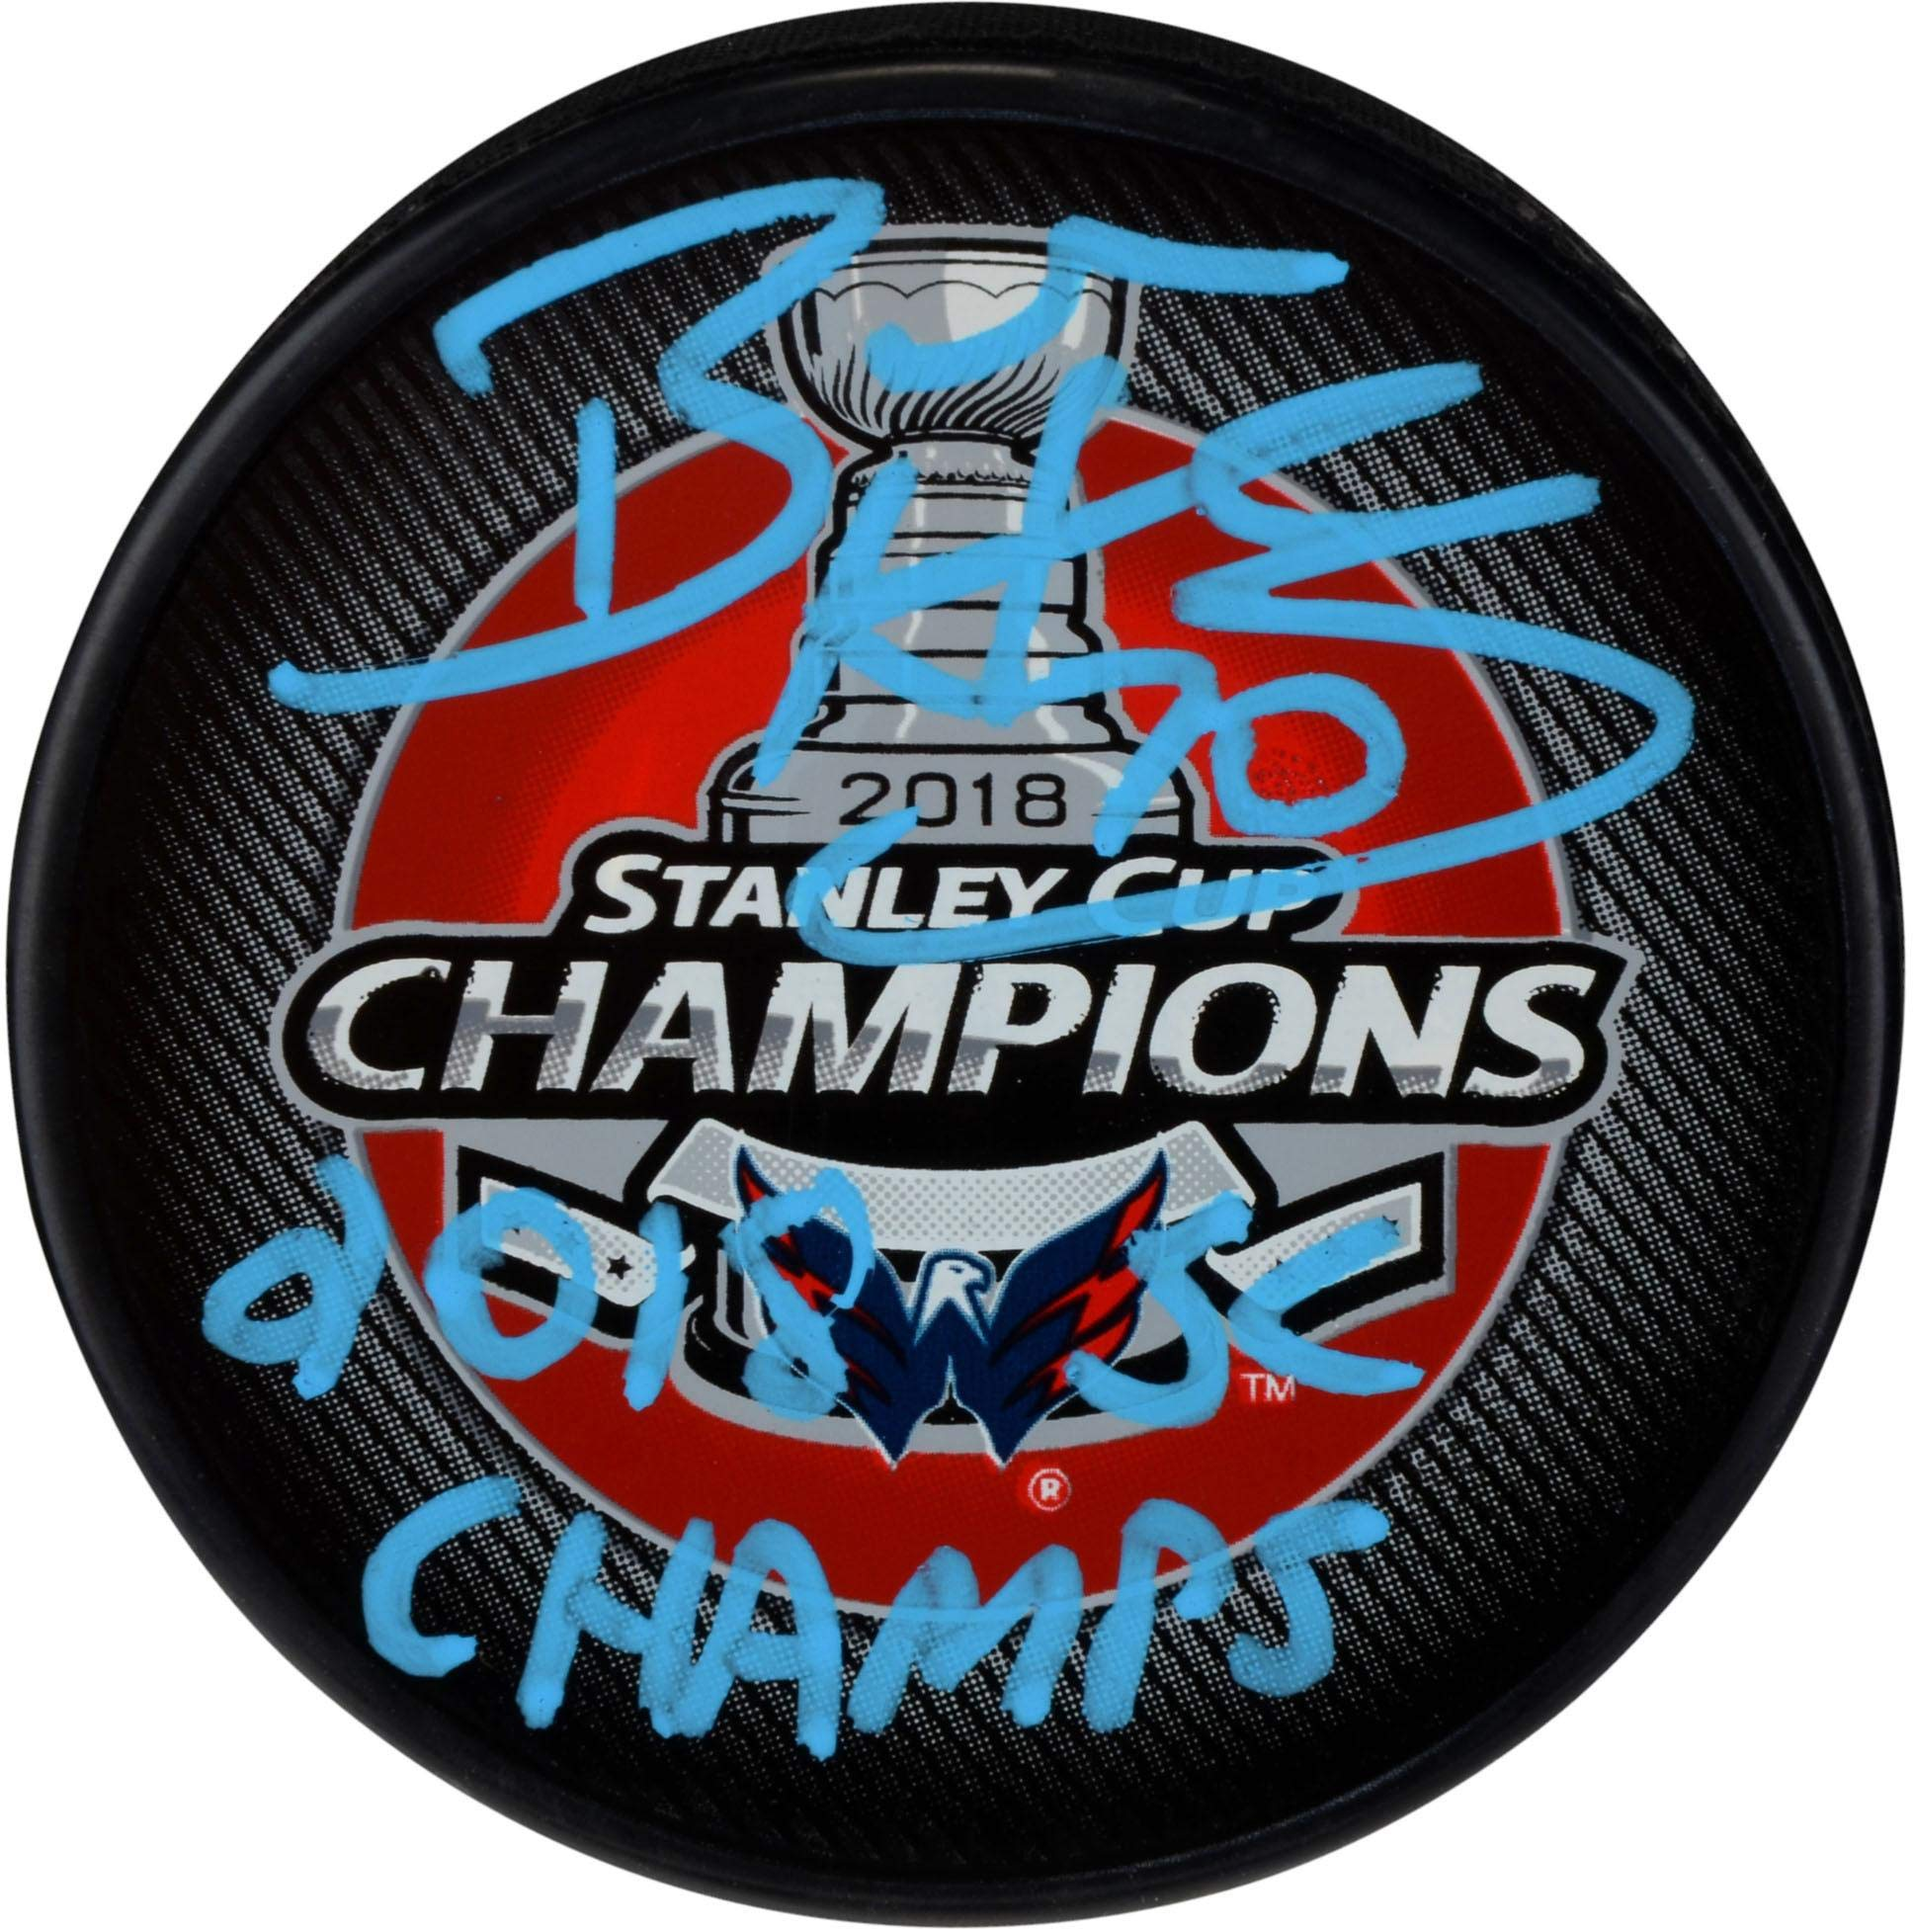 Braden Holtby Washington Capitals 2018 Stanley Cup Champions Autographed Stanley Cup Champions Logo Hockey Puck with 2018 SC Champs Inscription Fanatics Authentic Certified